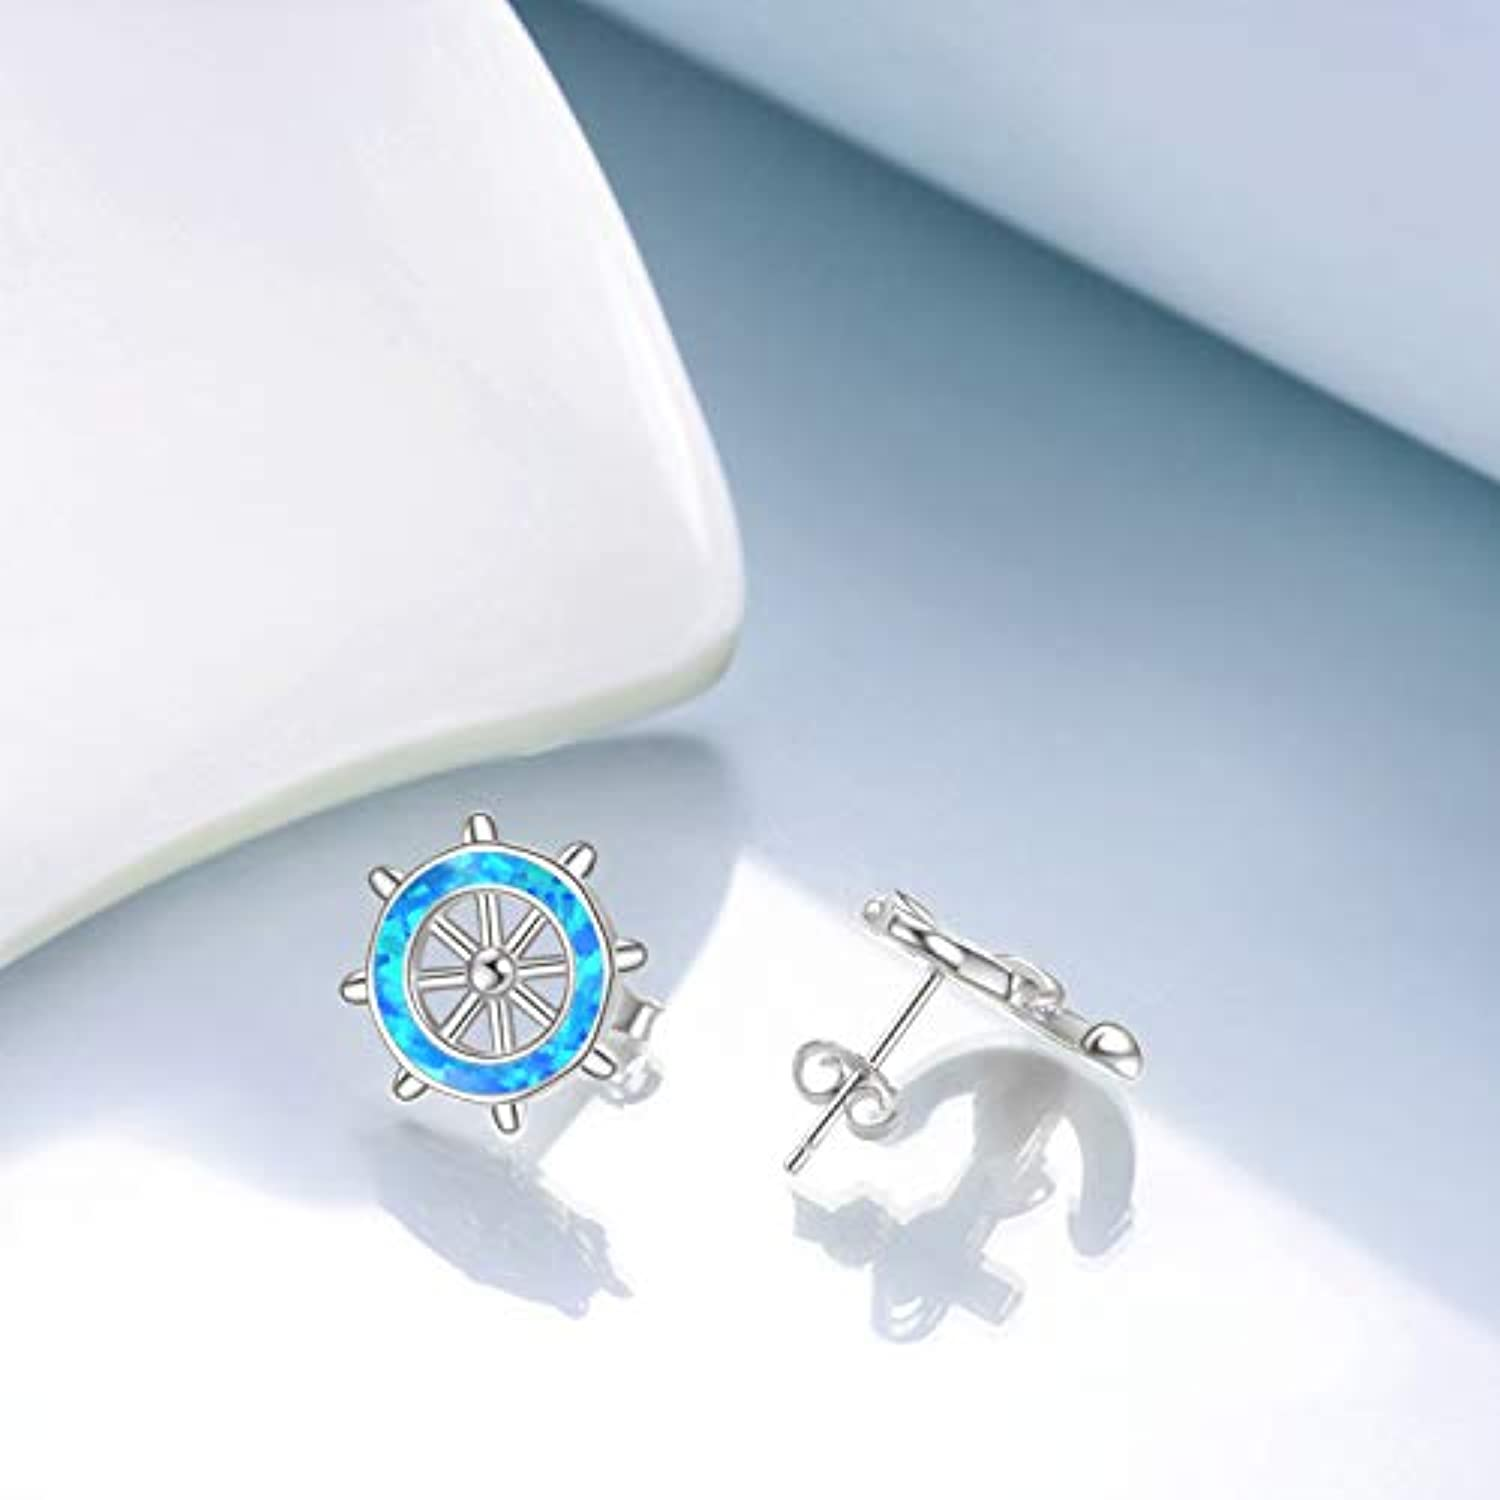 Anchor Stud Earrings Sterling Silver Hypoallergenic Rudder Studs Nautical Theme Anchor Earrings Jewelry for Women Girls Unisex